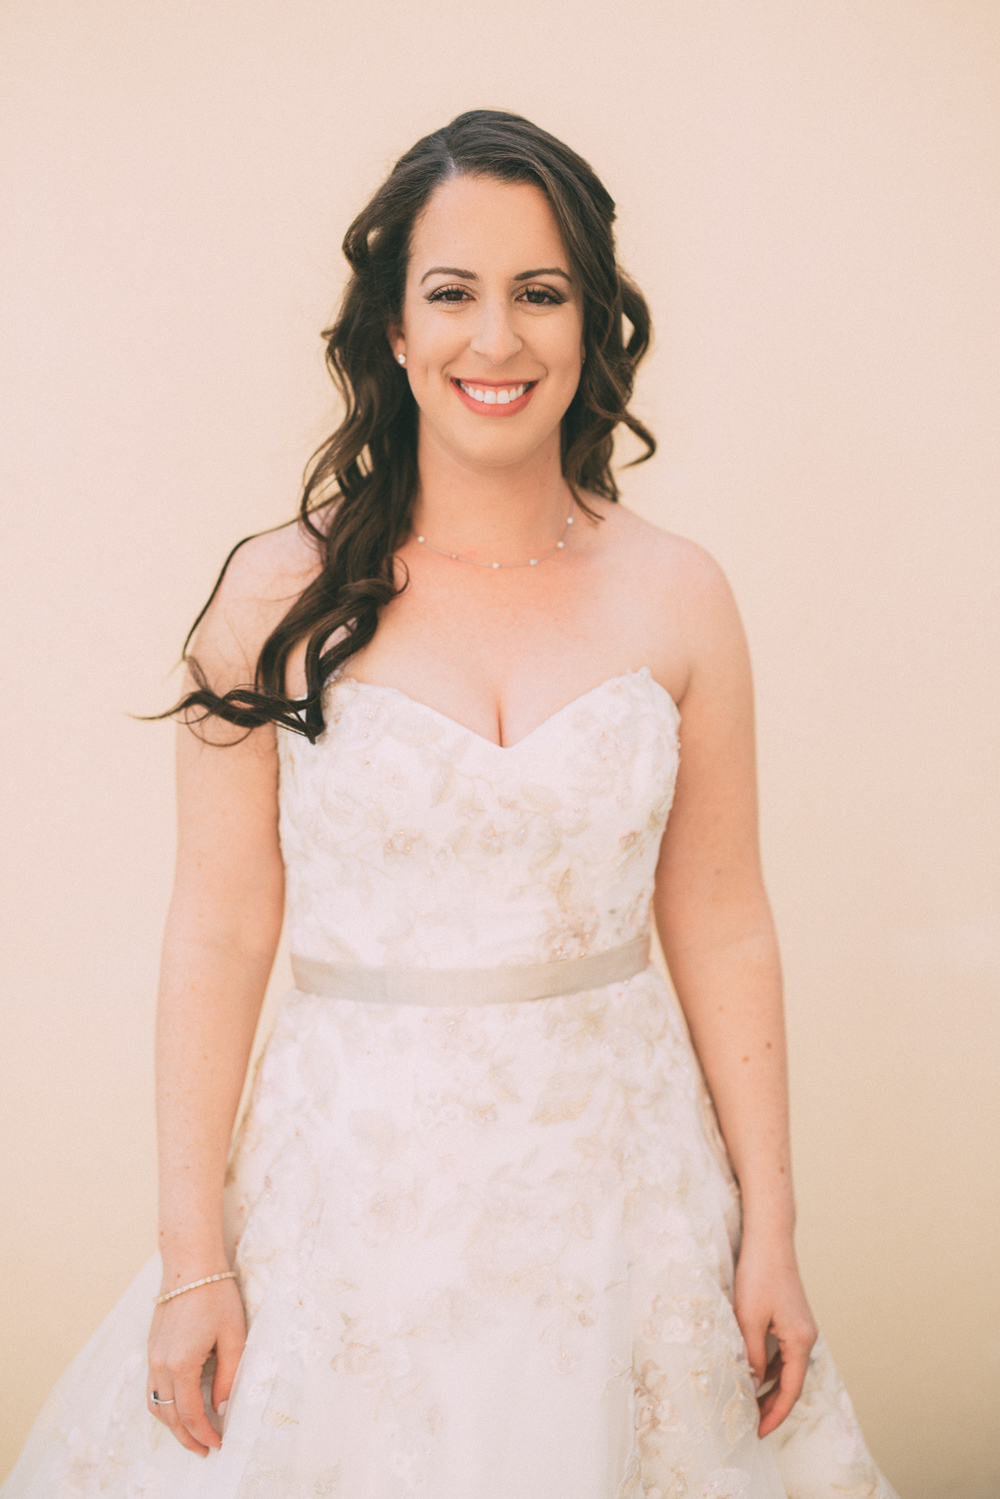 WhiskeyRedsWedding_CaliforniaWeddingPhotographer_TheImageIsFound_0045.jpg